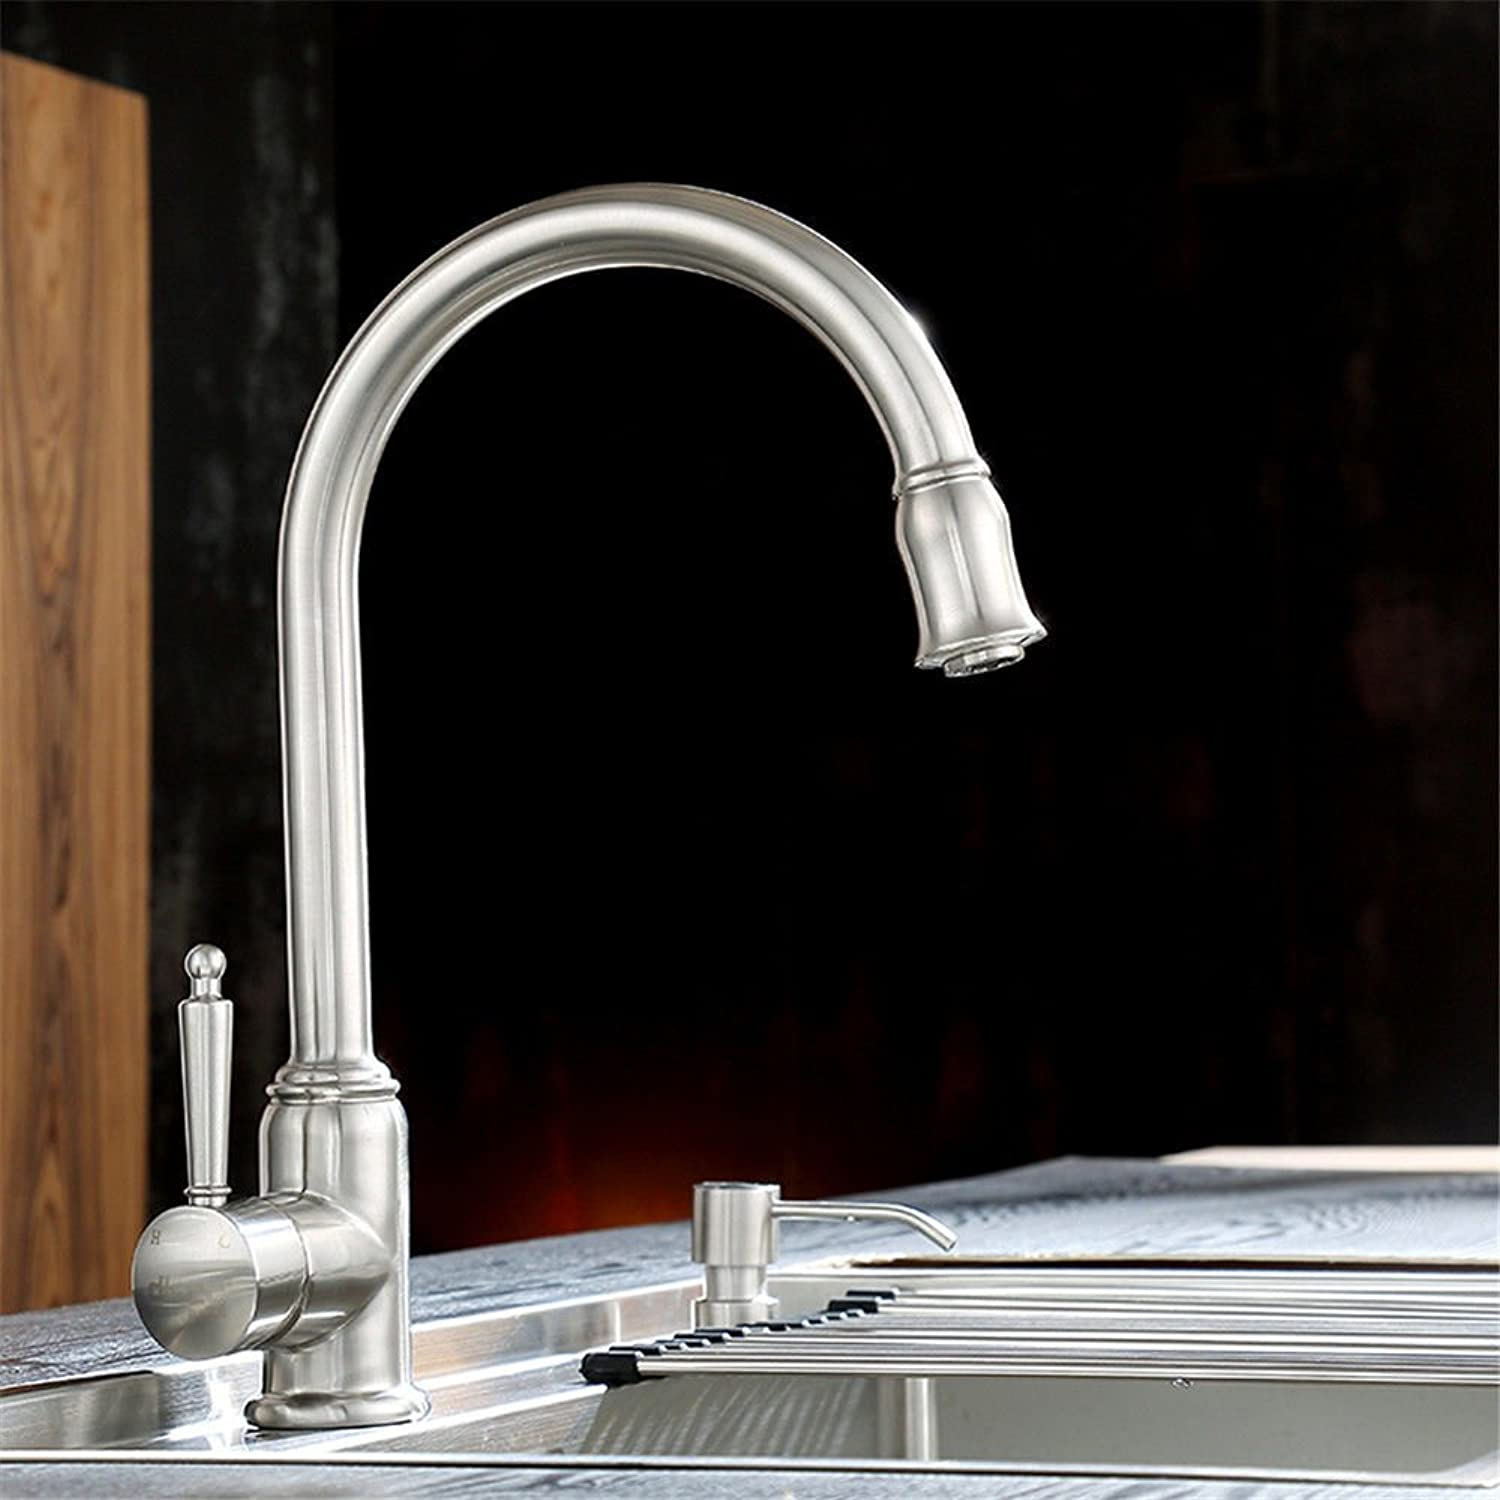 Lalaky Taps Faucet Kitchen Mixer Sink Waterfall Bathroom Mixer Basin Mixer Tap for Kitchen Bathroom and Washroom Hot and Cold 304 Stainless Steel Wire Drawing Universal redation